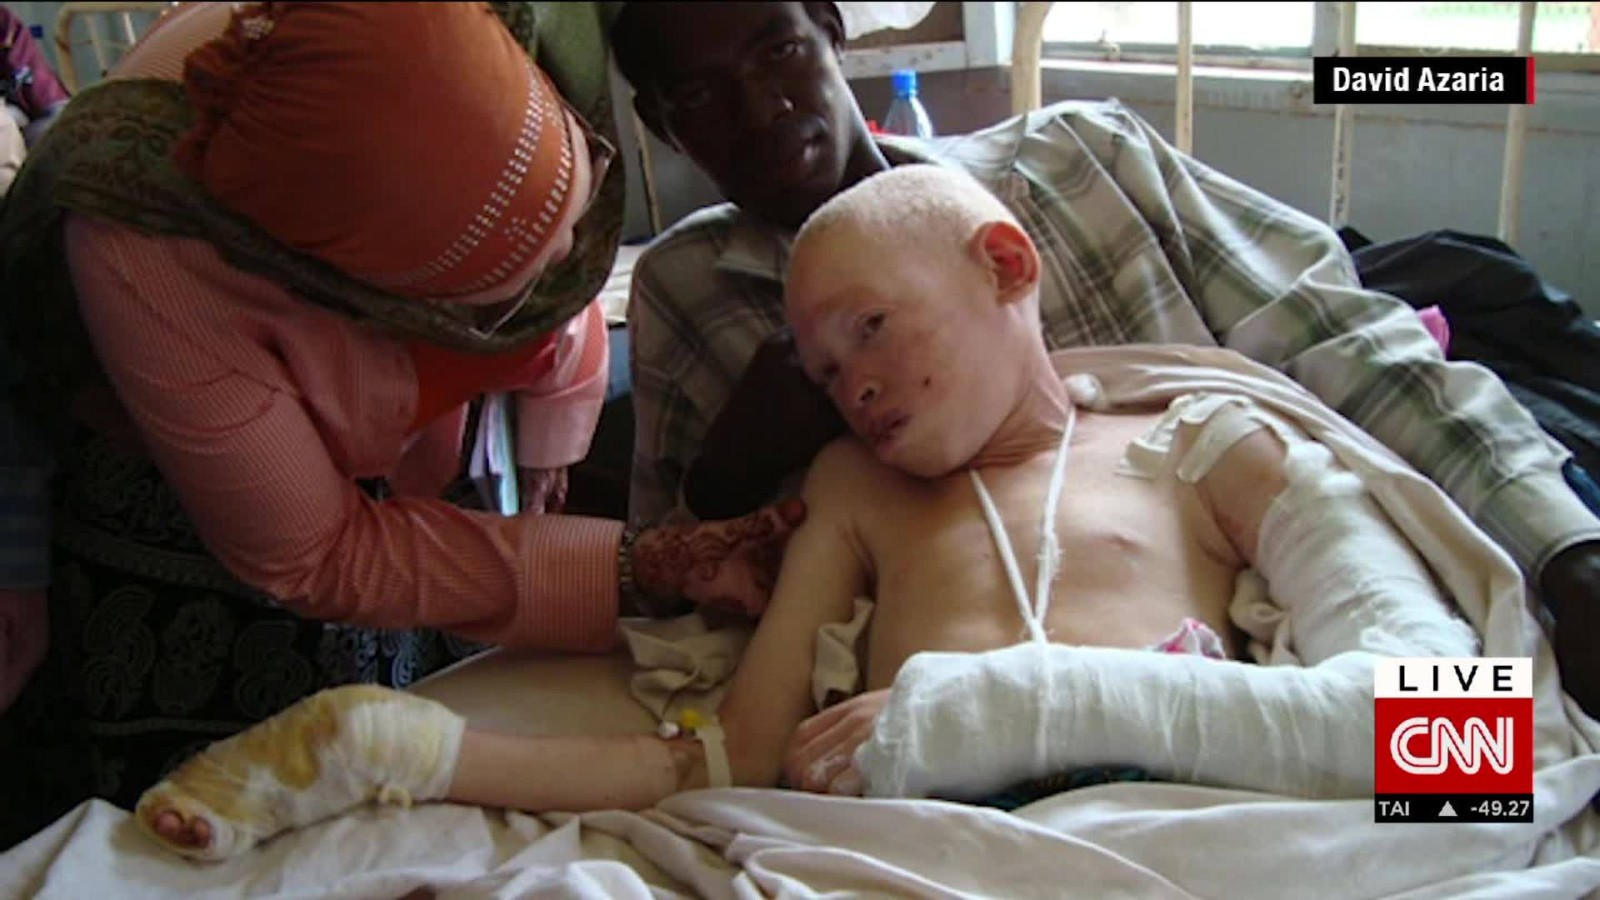 Albino teen attacked for her body parts